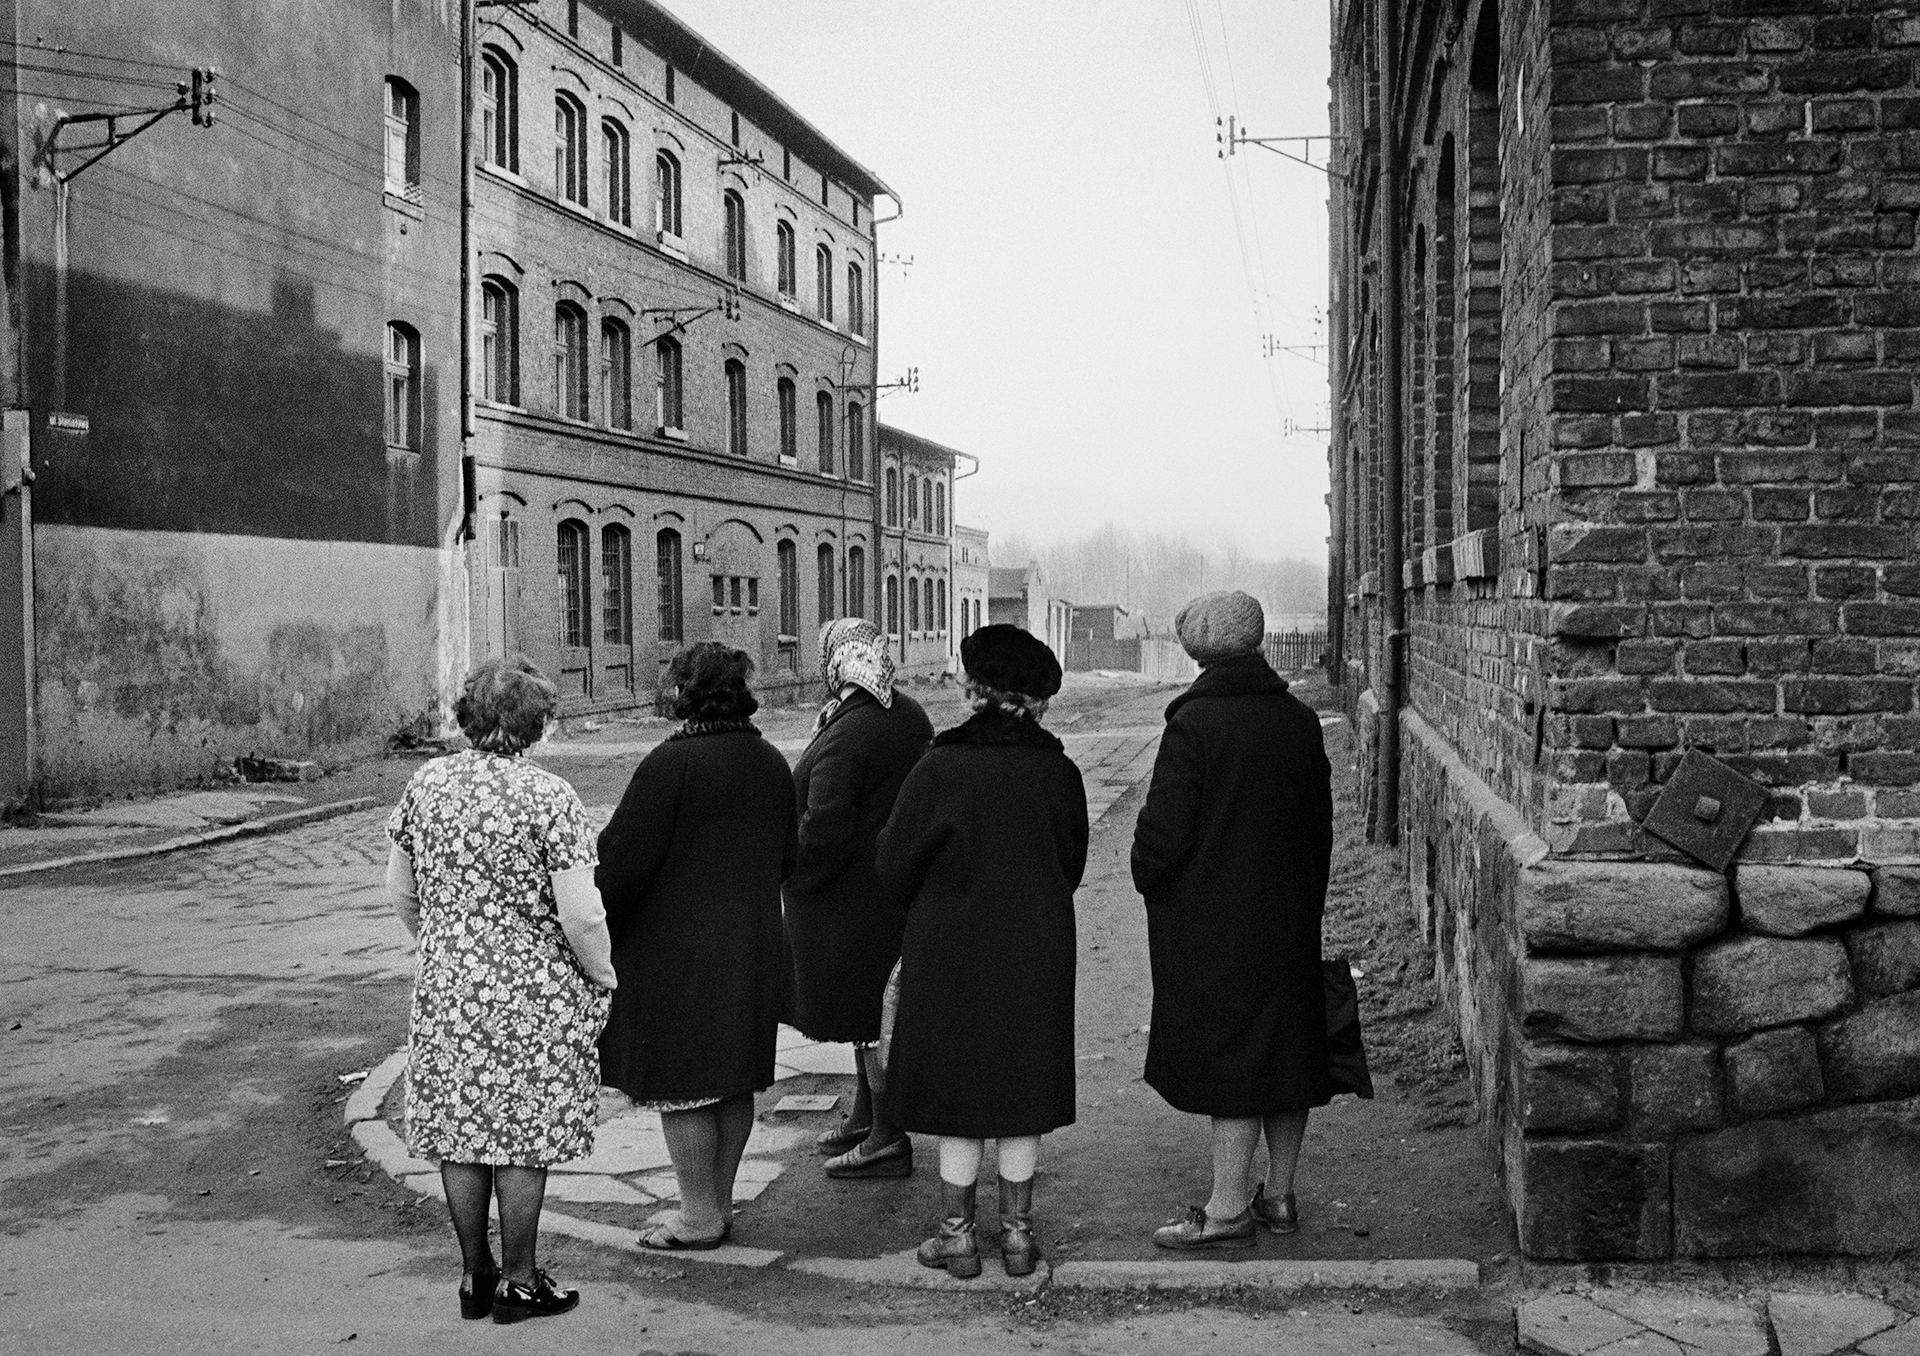 Ladies Looking, Ruda Śląska (1977)